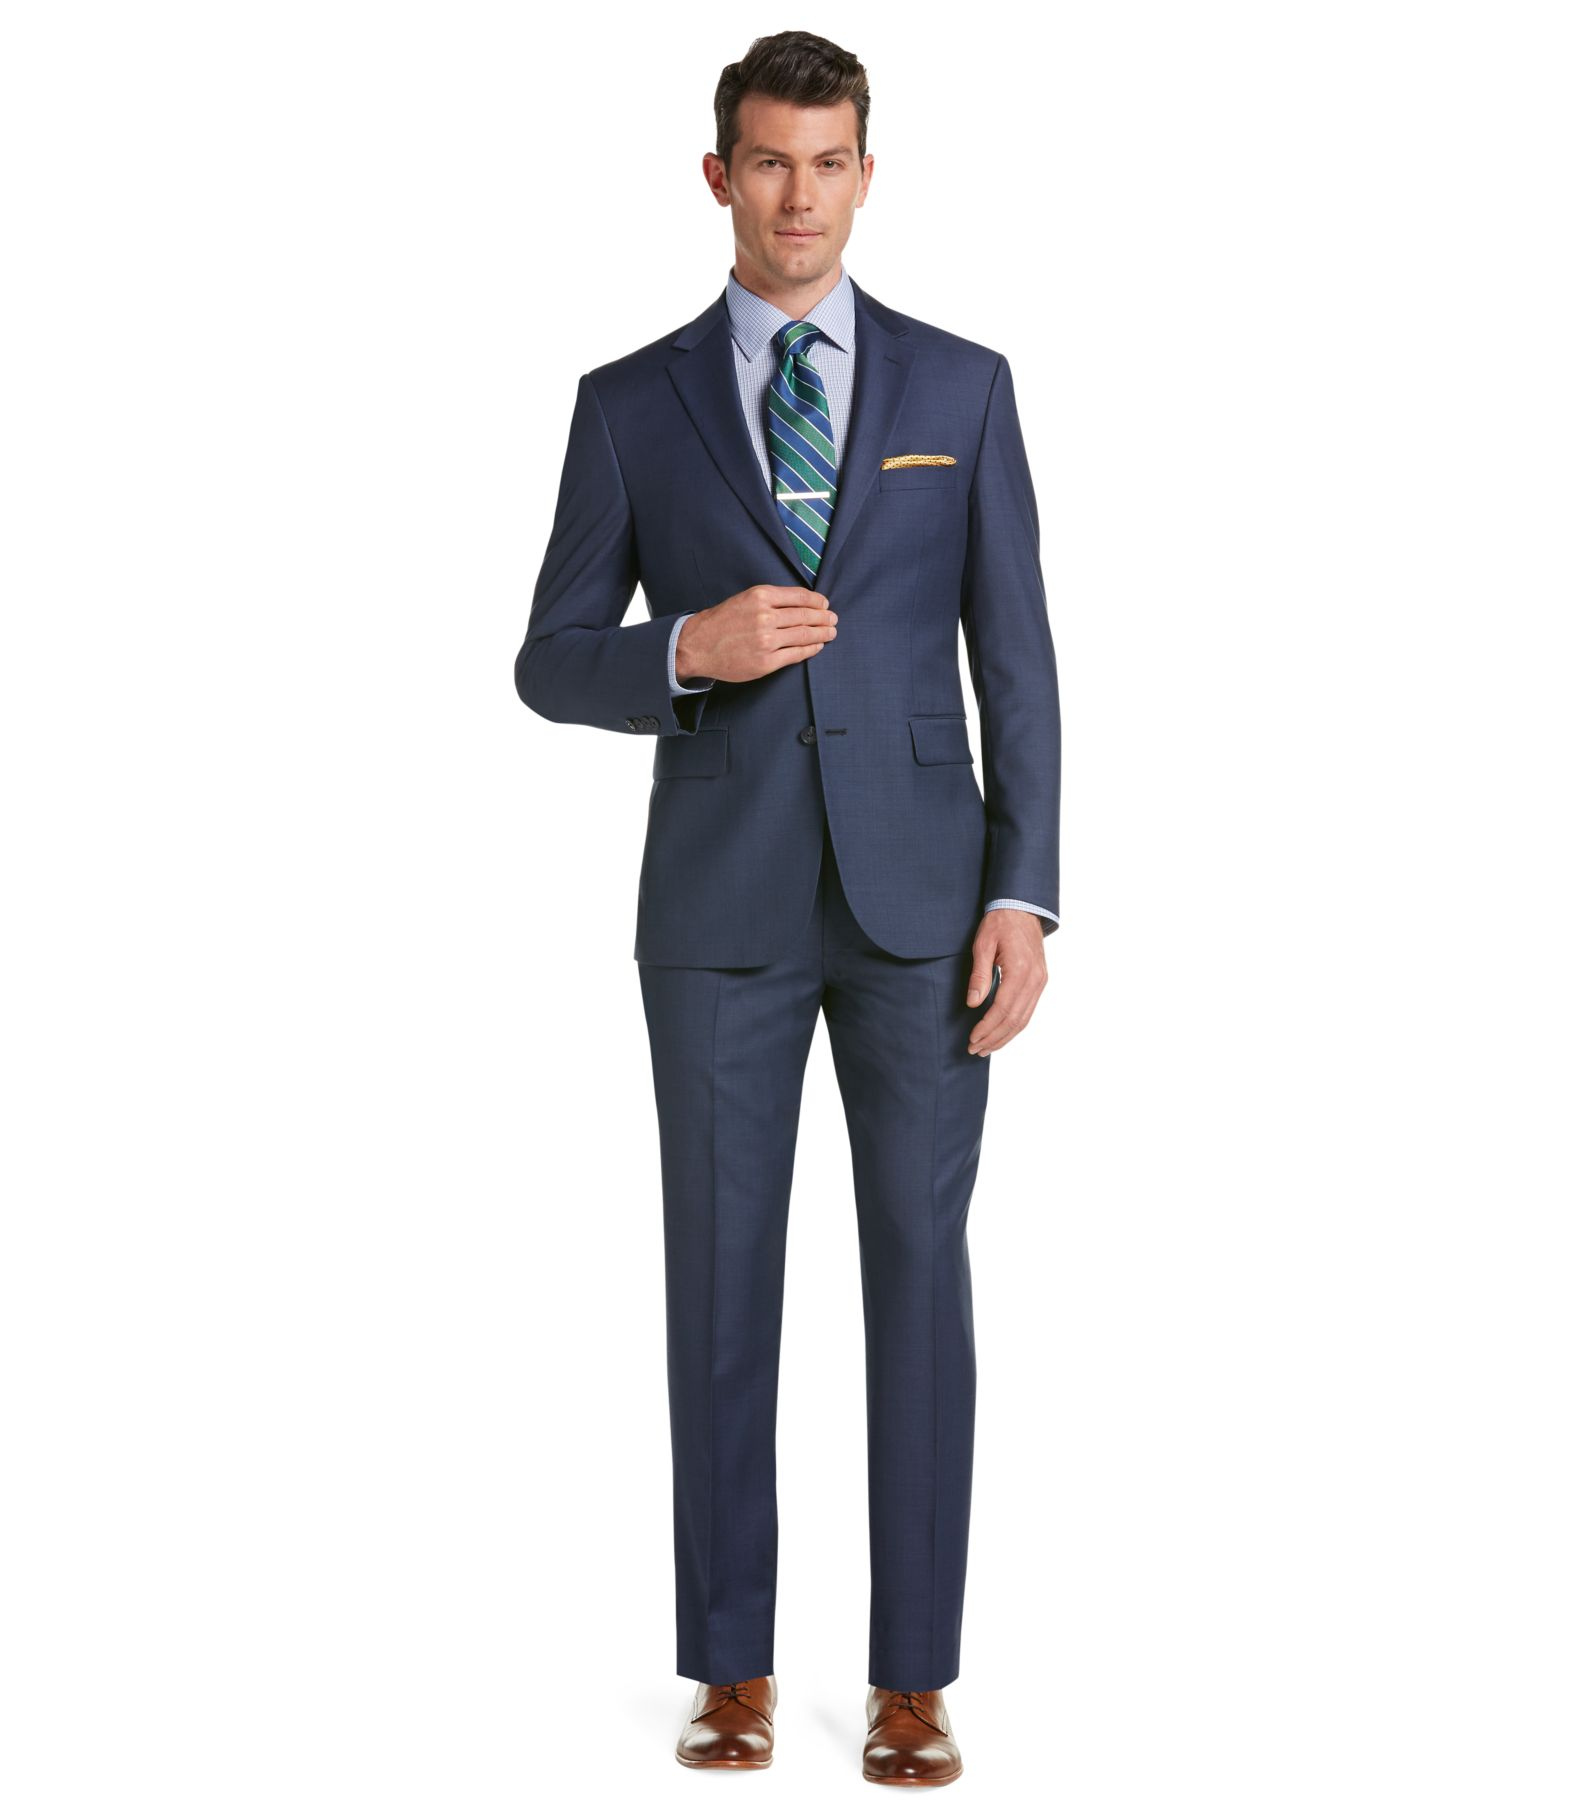 Men's Suits & Clothing Sale | Current Deals & Promotions | JoS. A